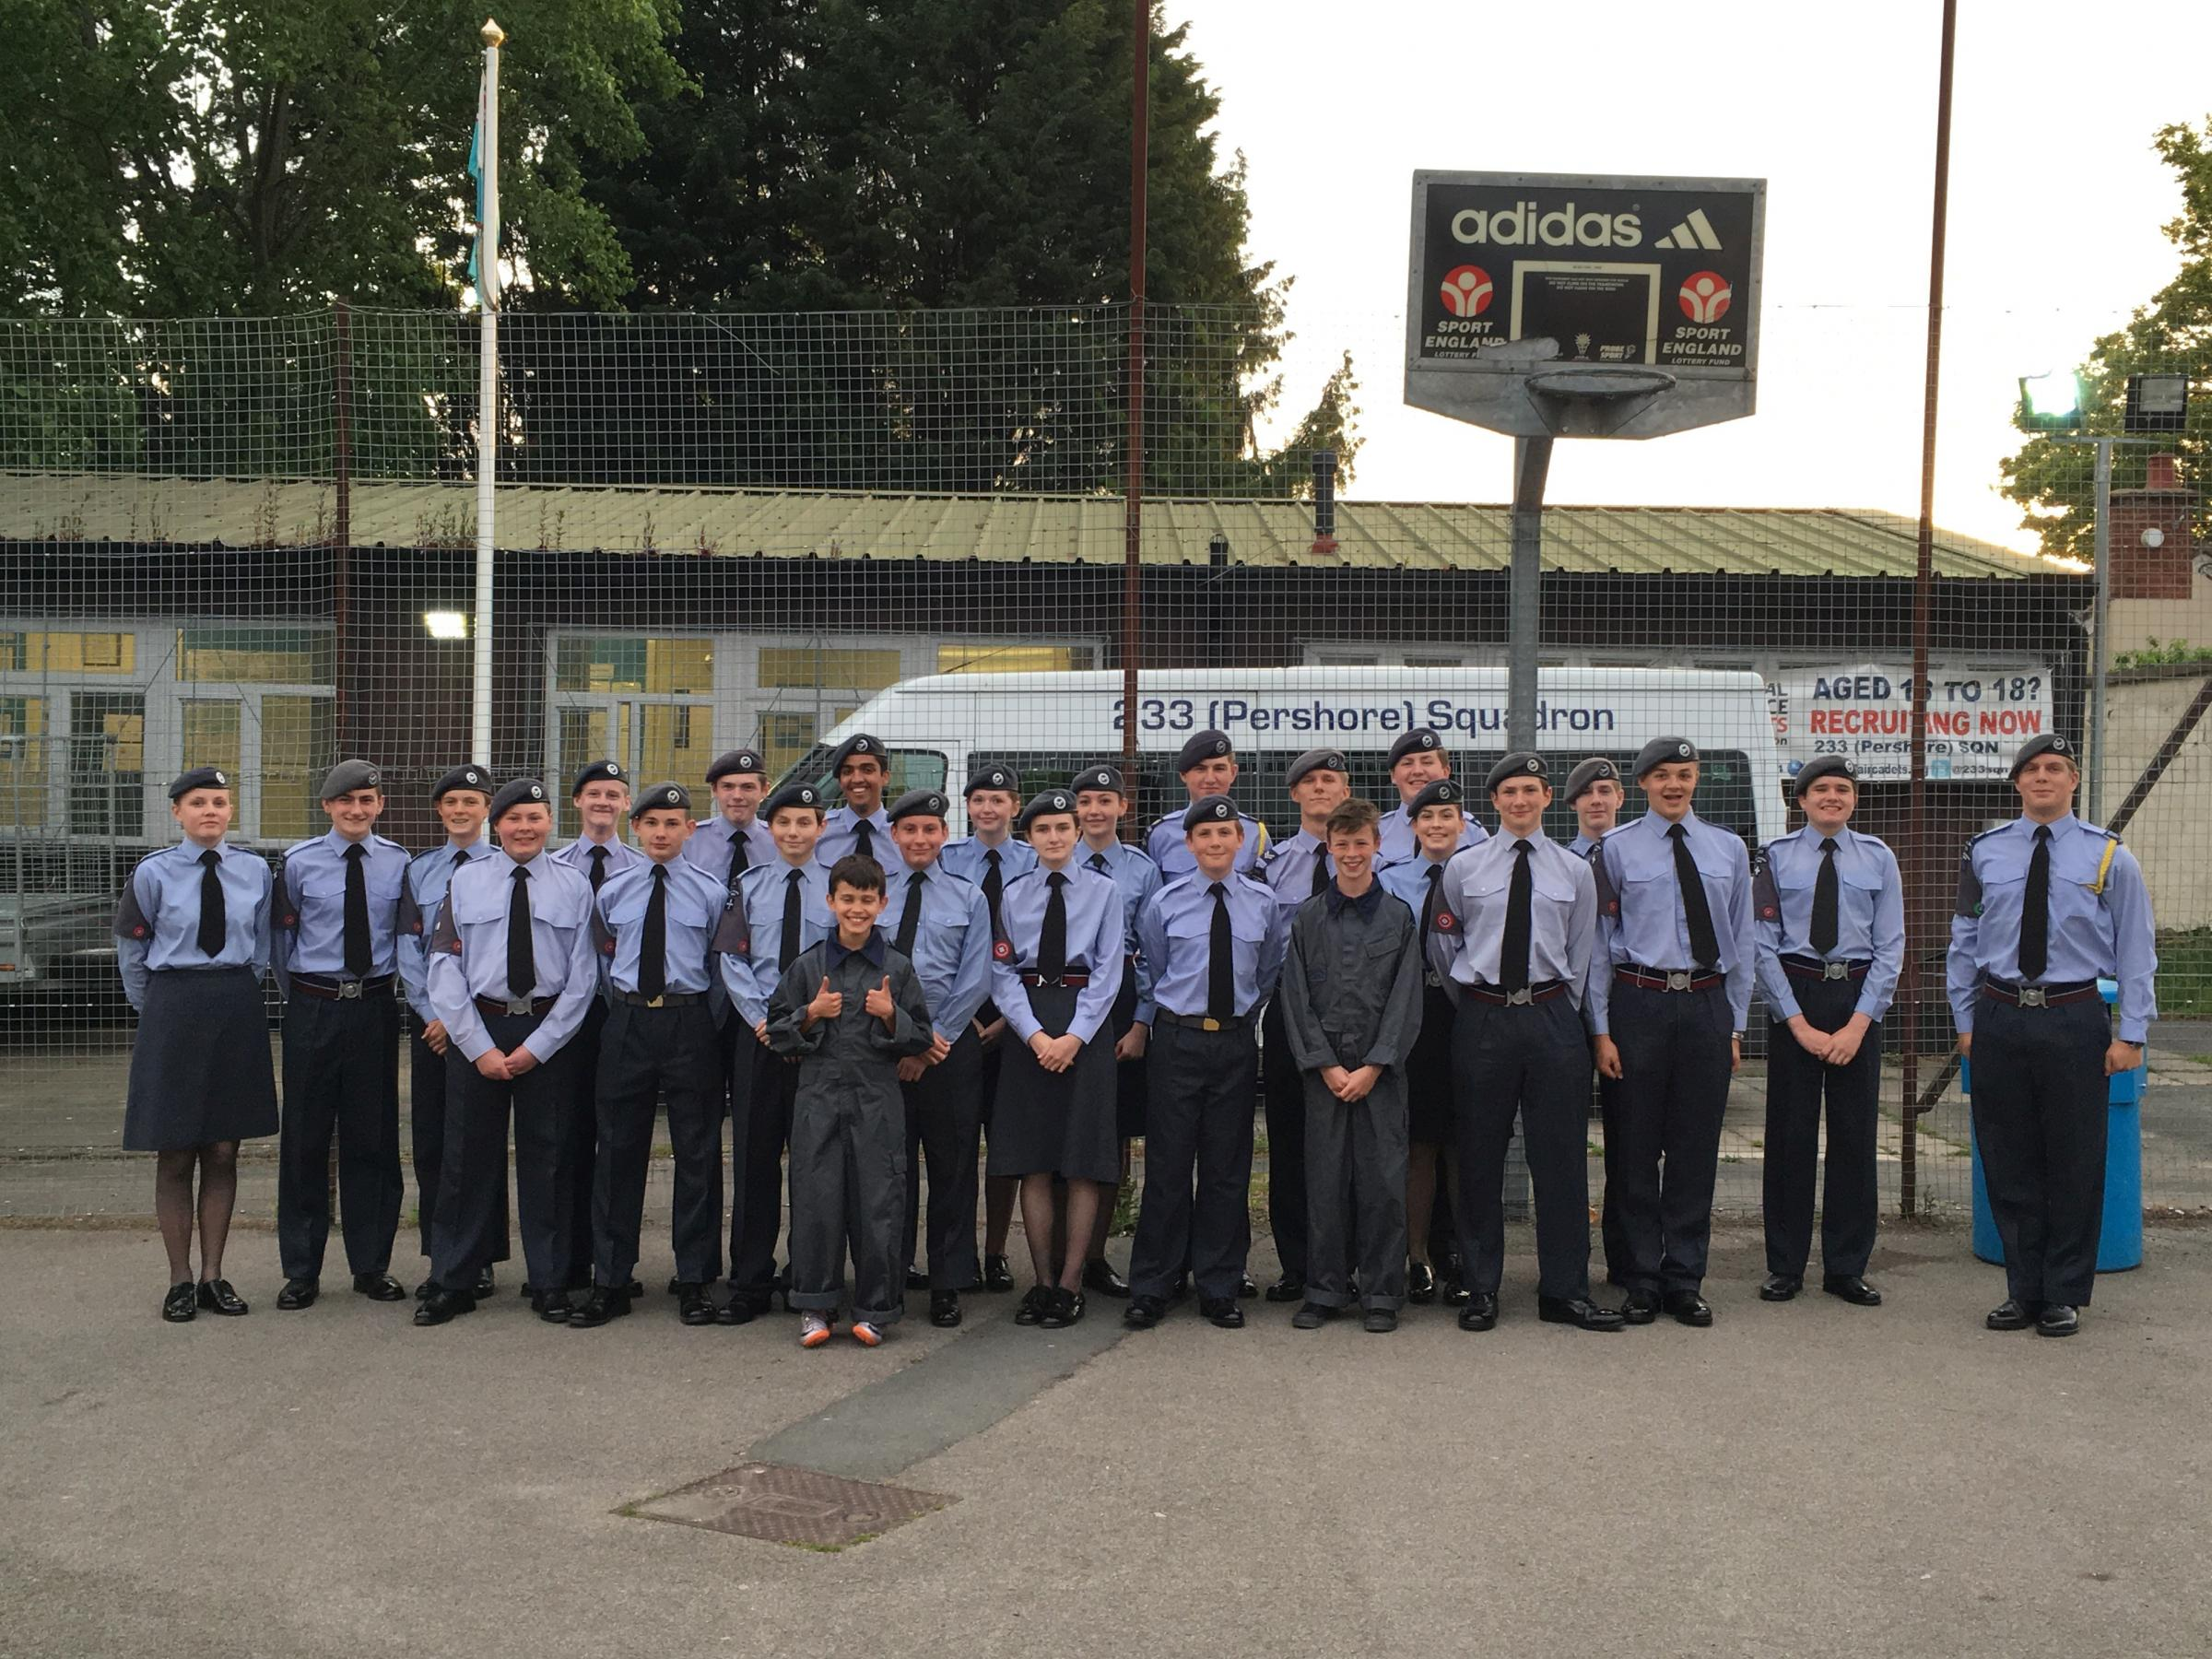 DONATION: 233 Squadron Air Training Corps at its base in Station Road, Pershore